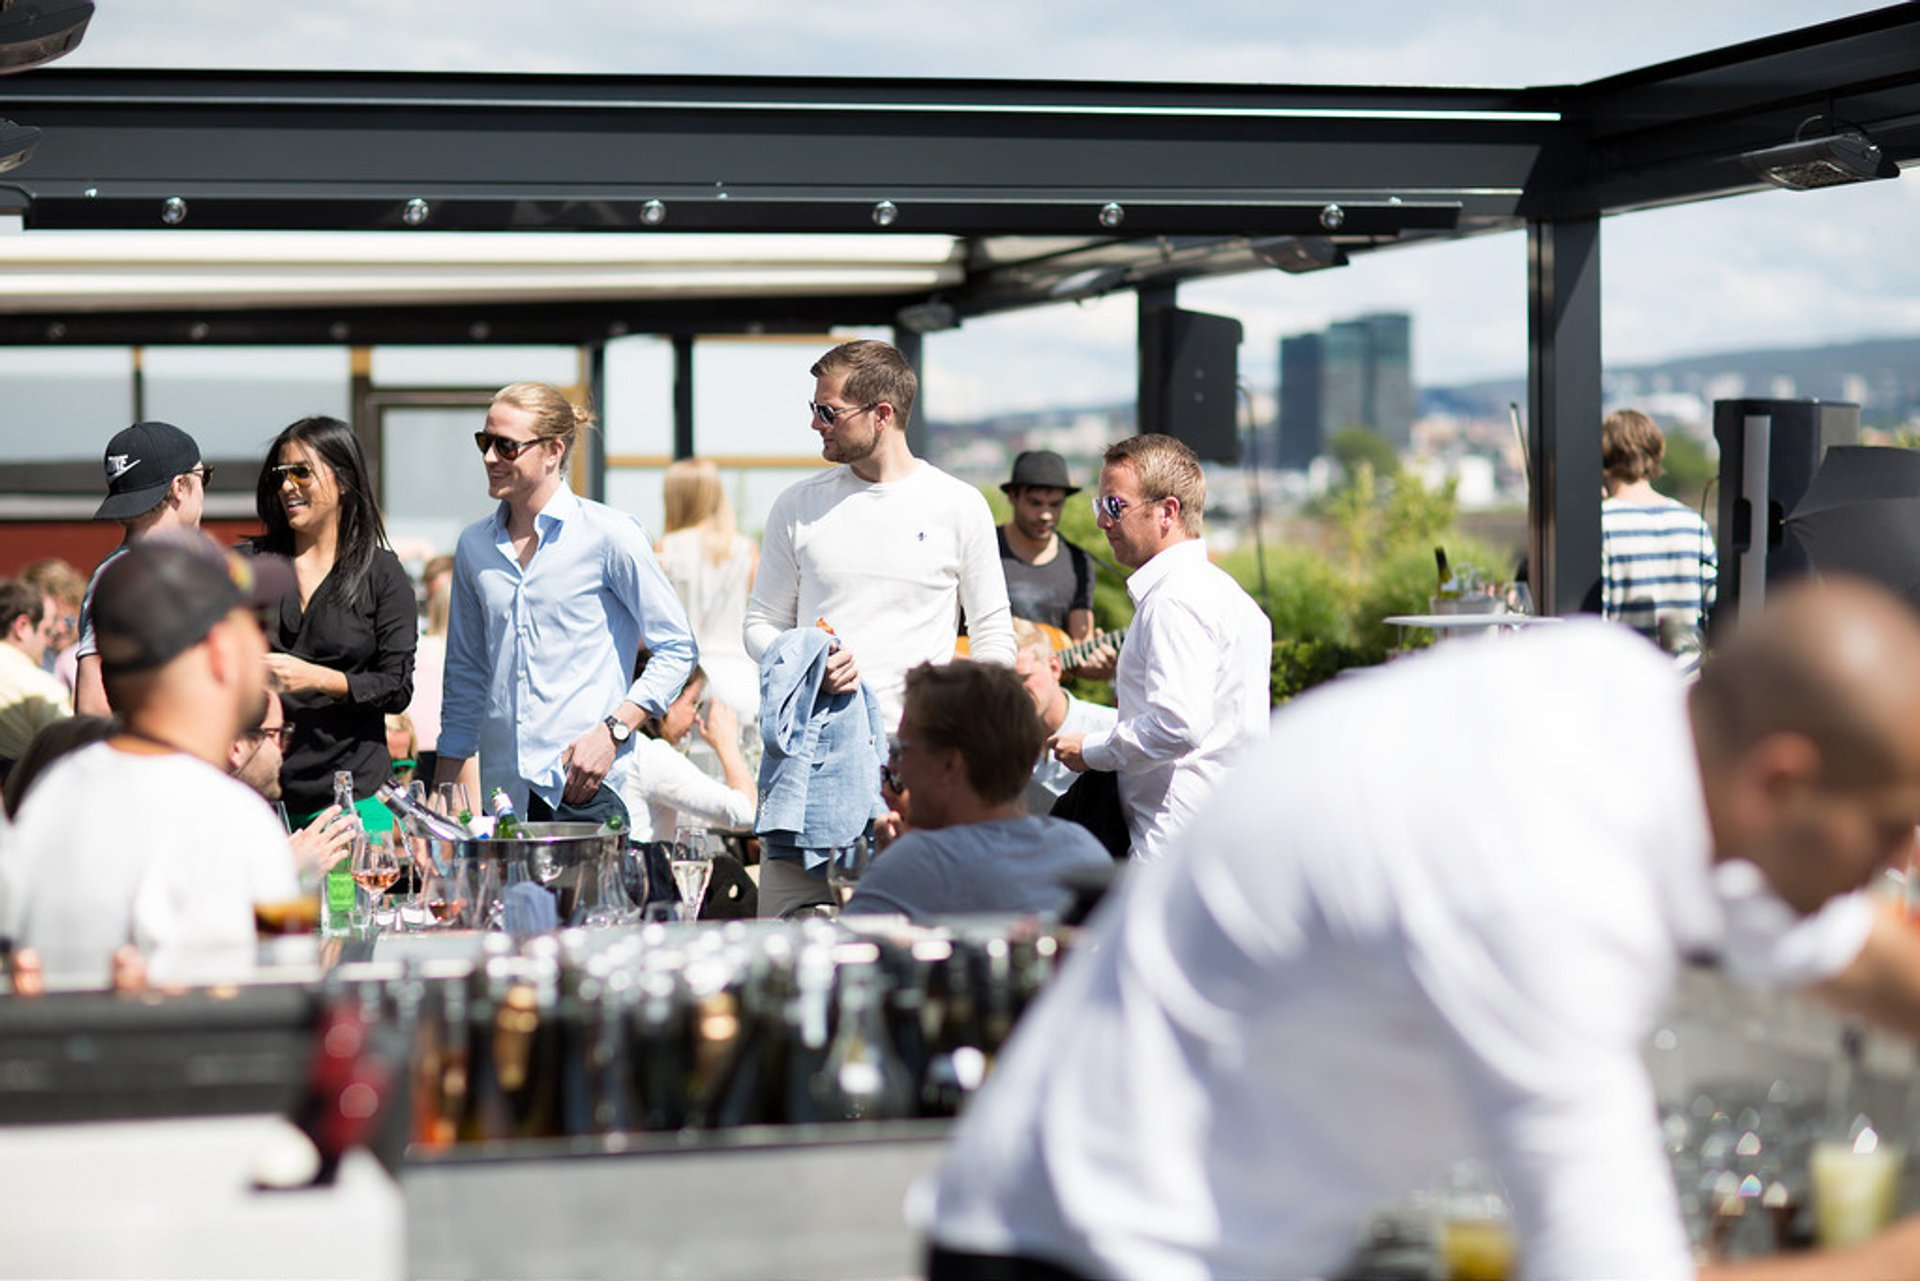 Rooftop Bars in Oslo 2020 - Best Time